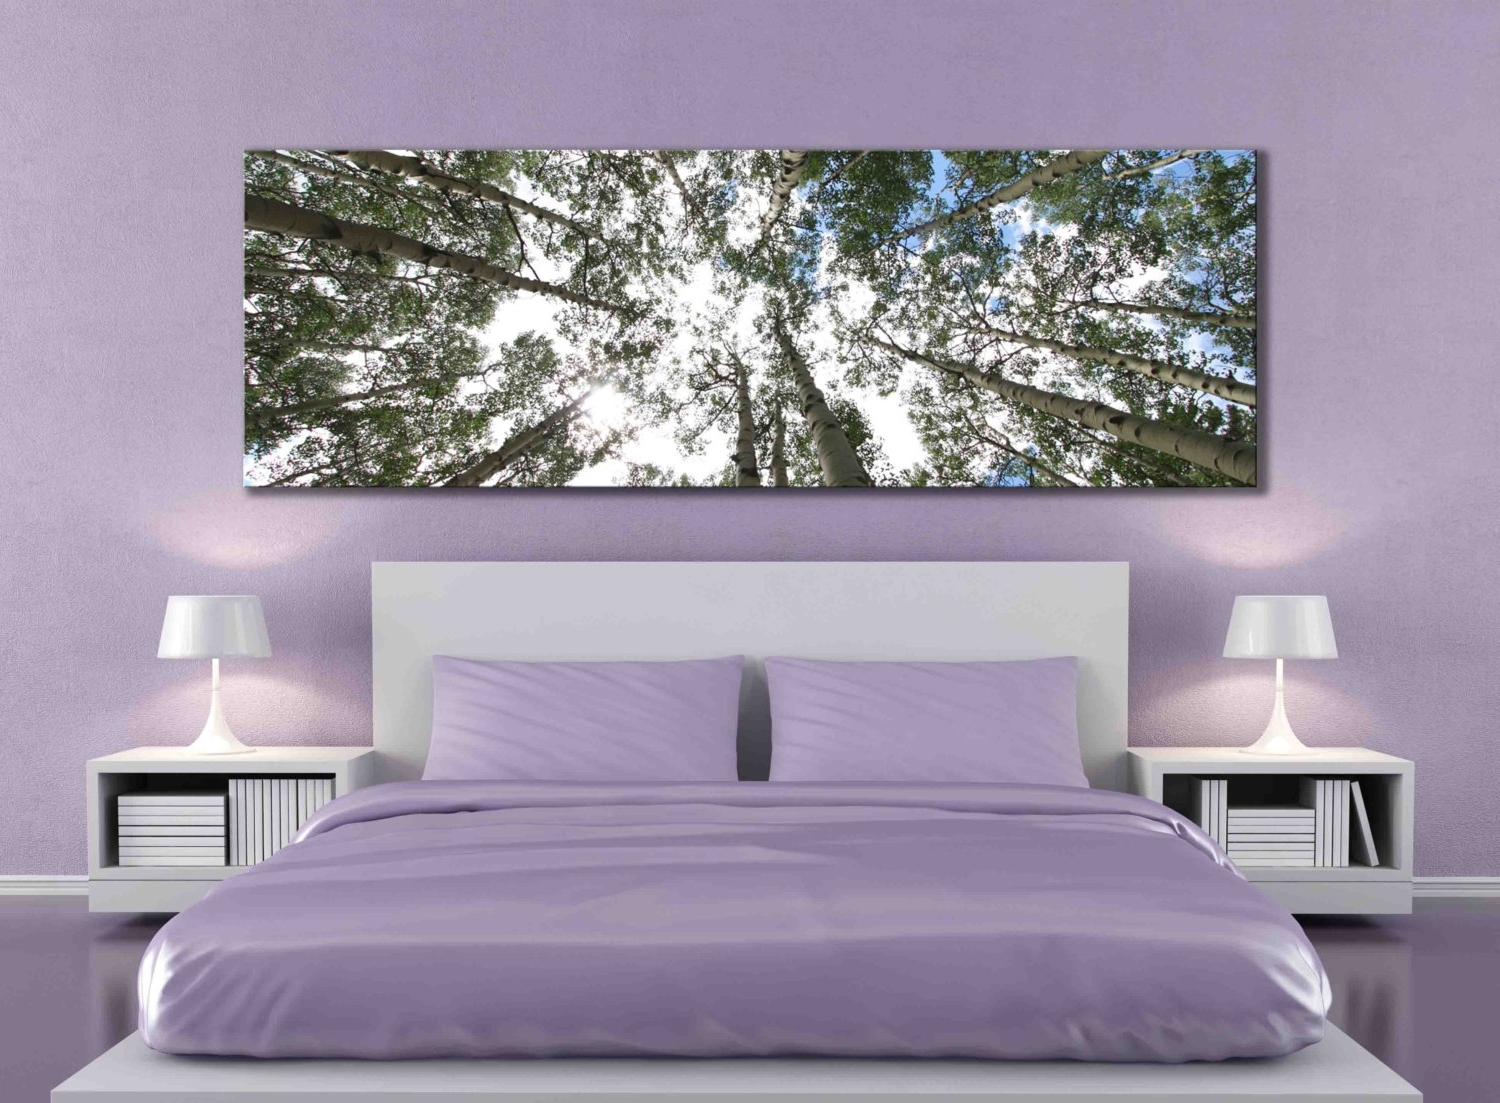 Famous Big Aspen Tree Photograph Large Panoramic Canvas Print, Nature Within Wall Art Over Bed (View 2 of 15)